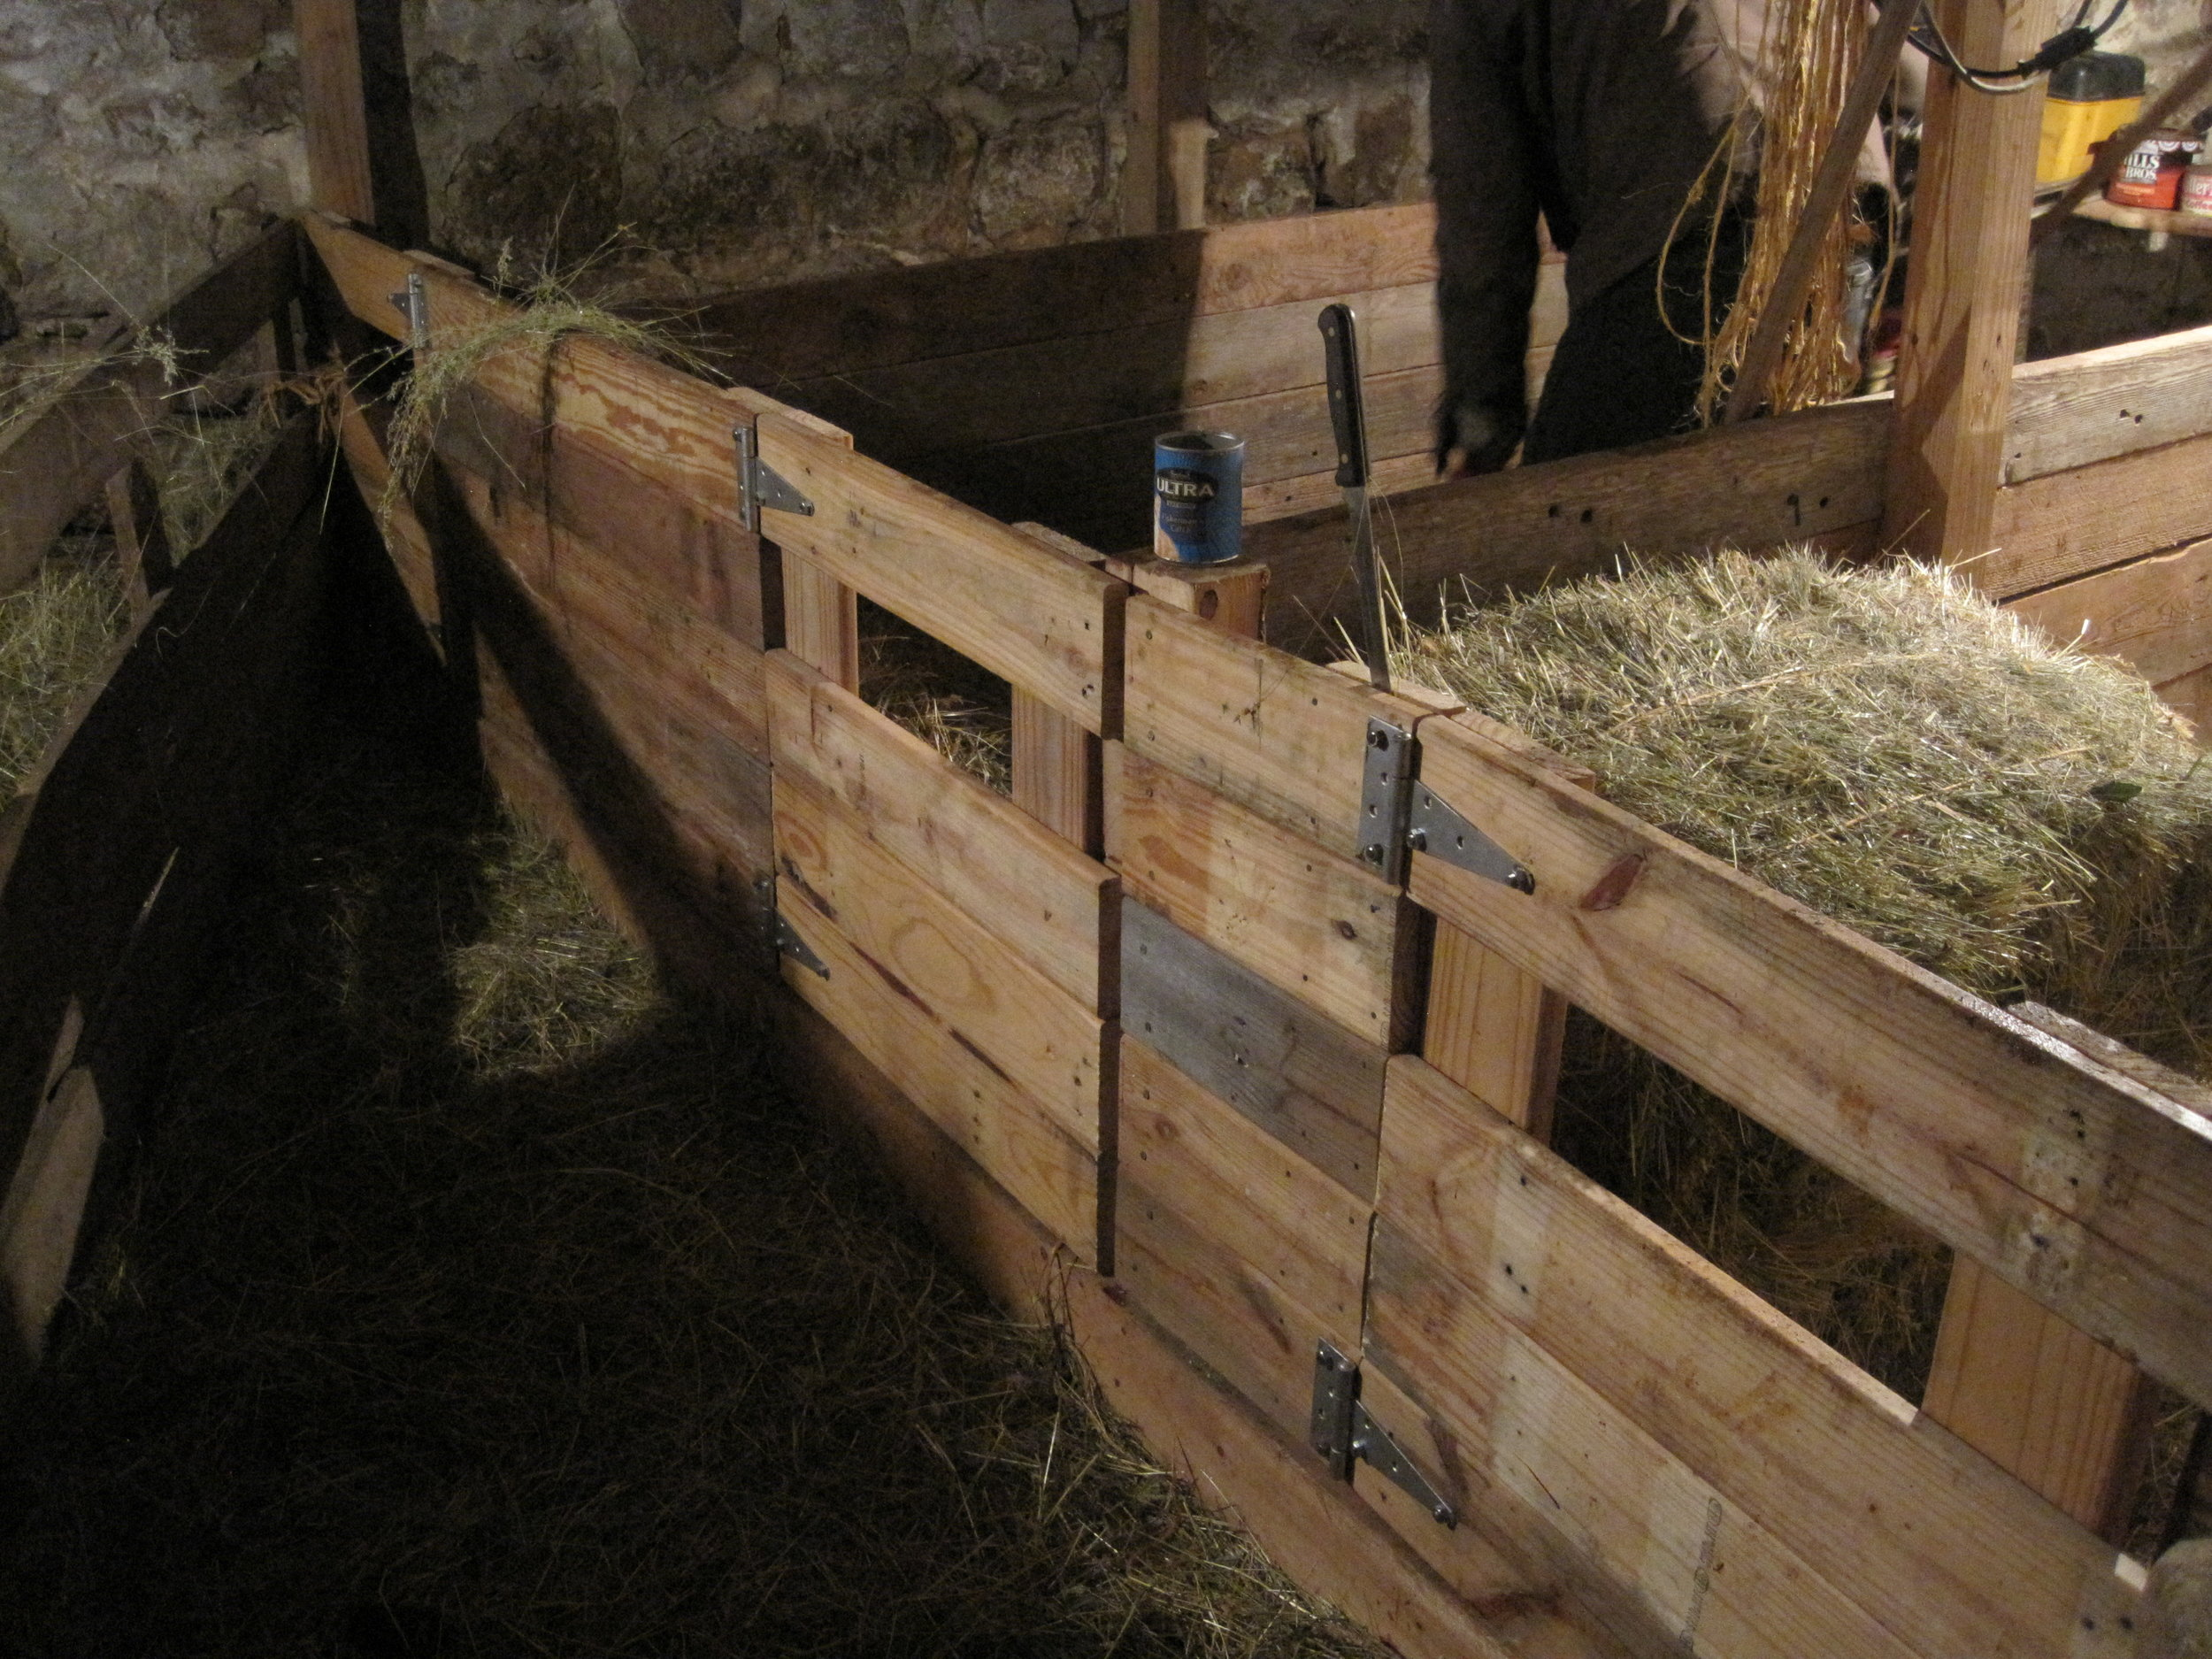 New gates, pen walls and posts, all constructed of salvaged lumber.